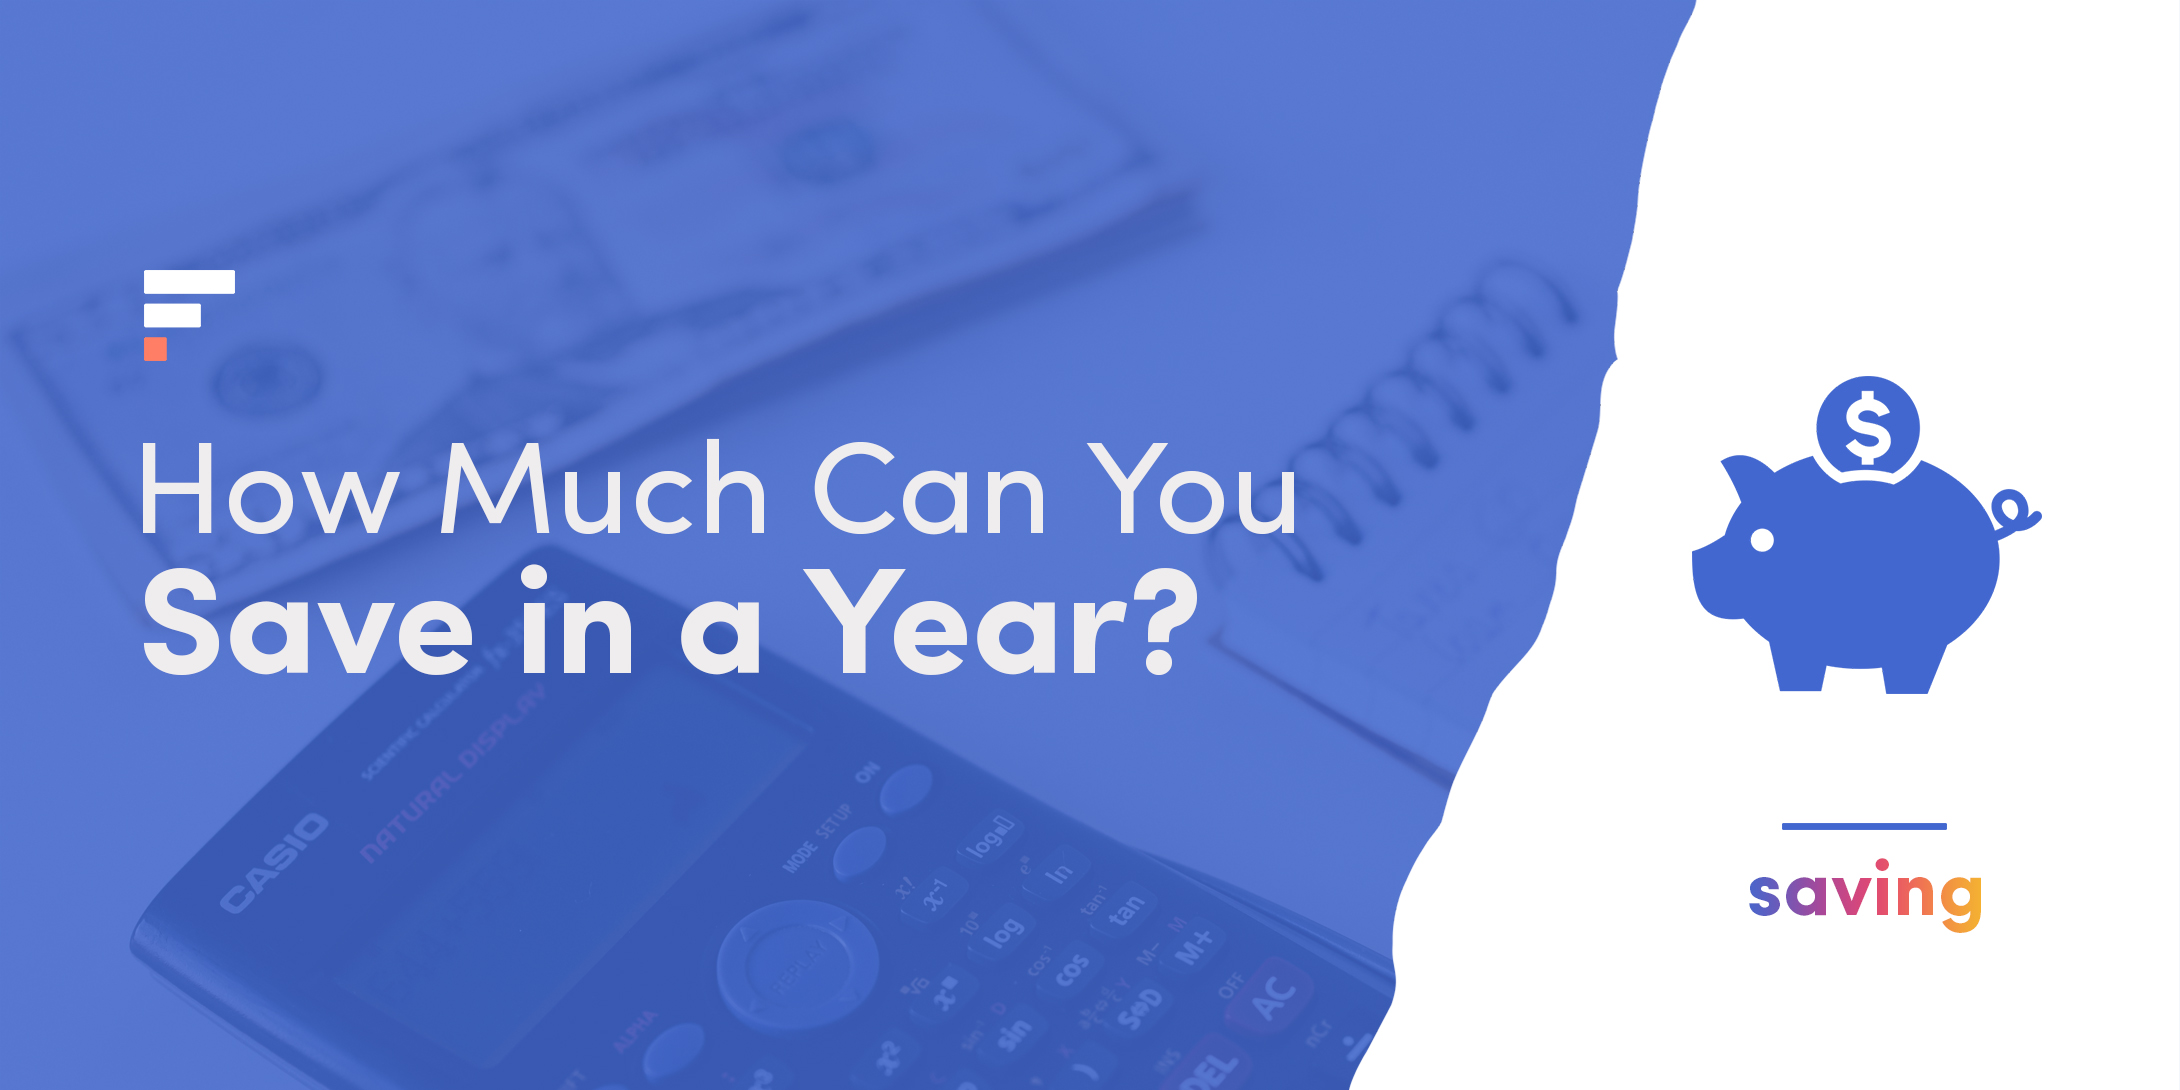 How much can you save in a year?